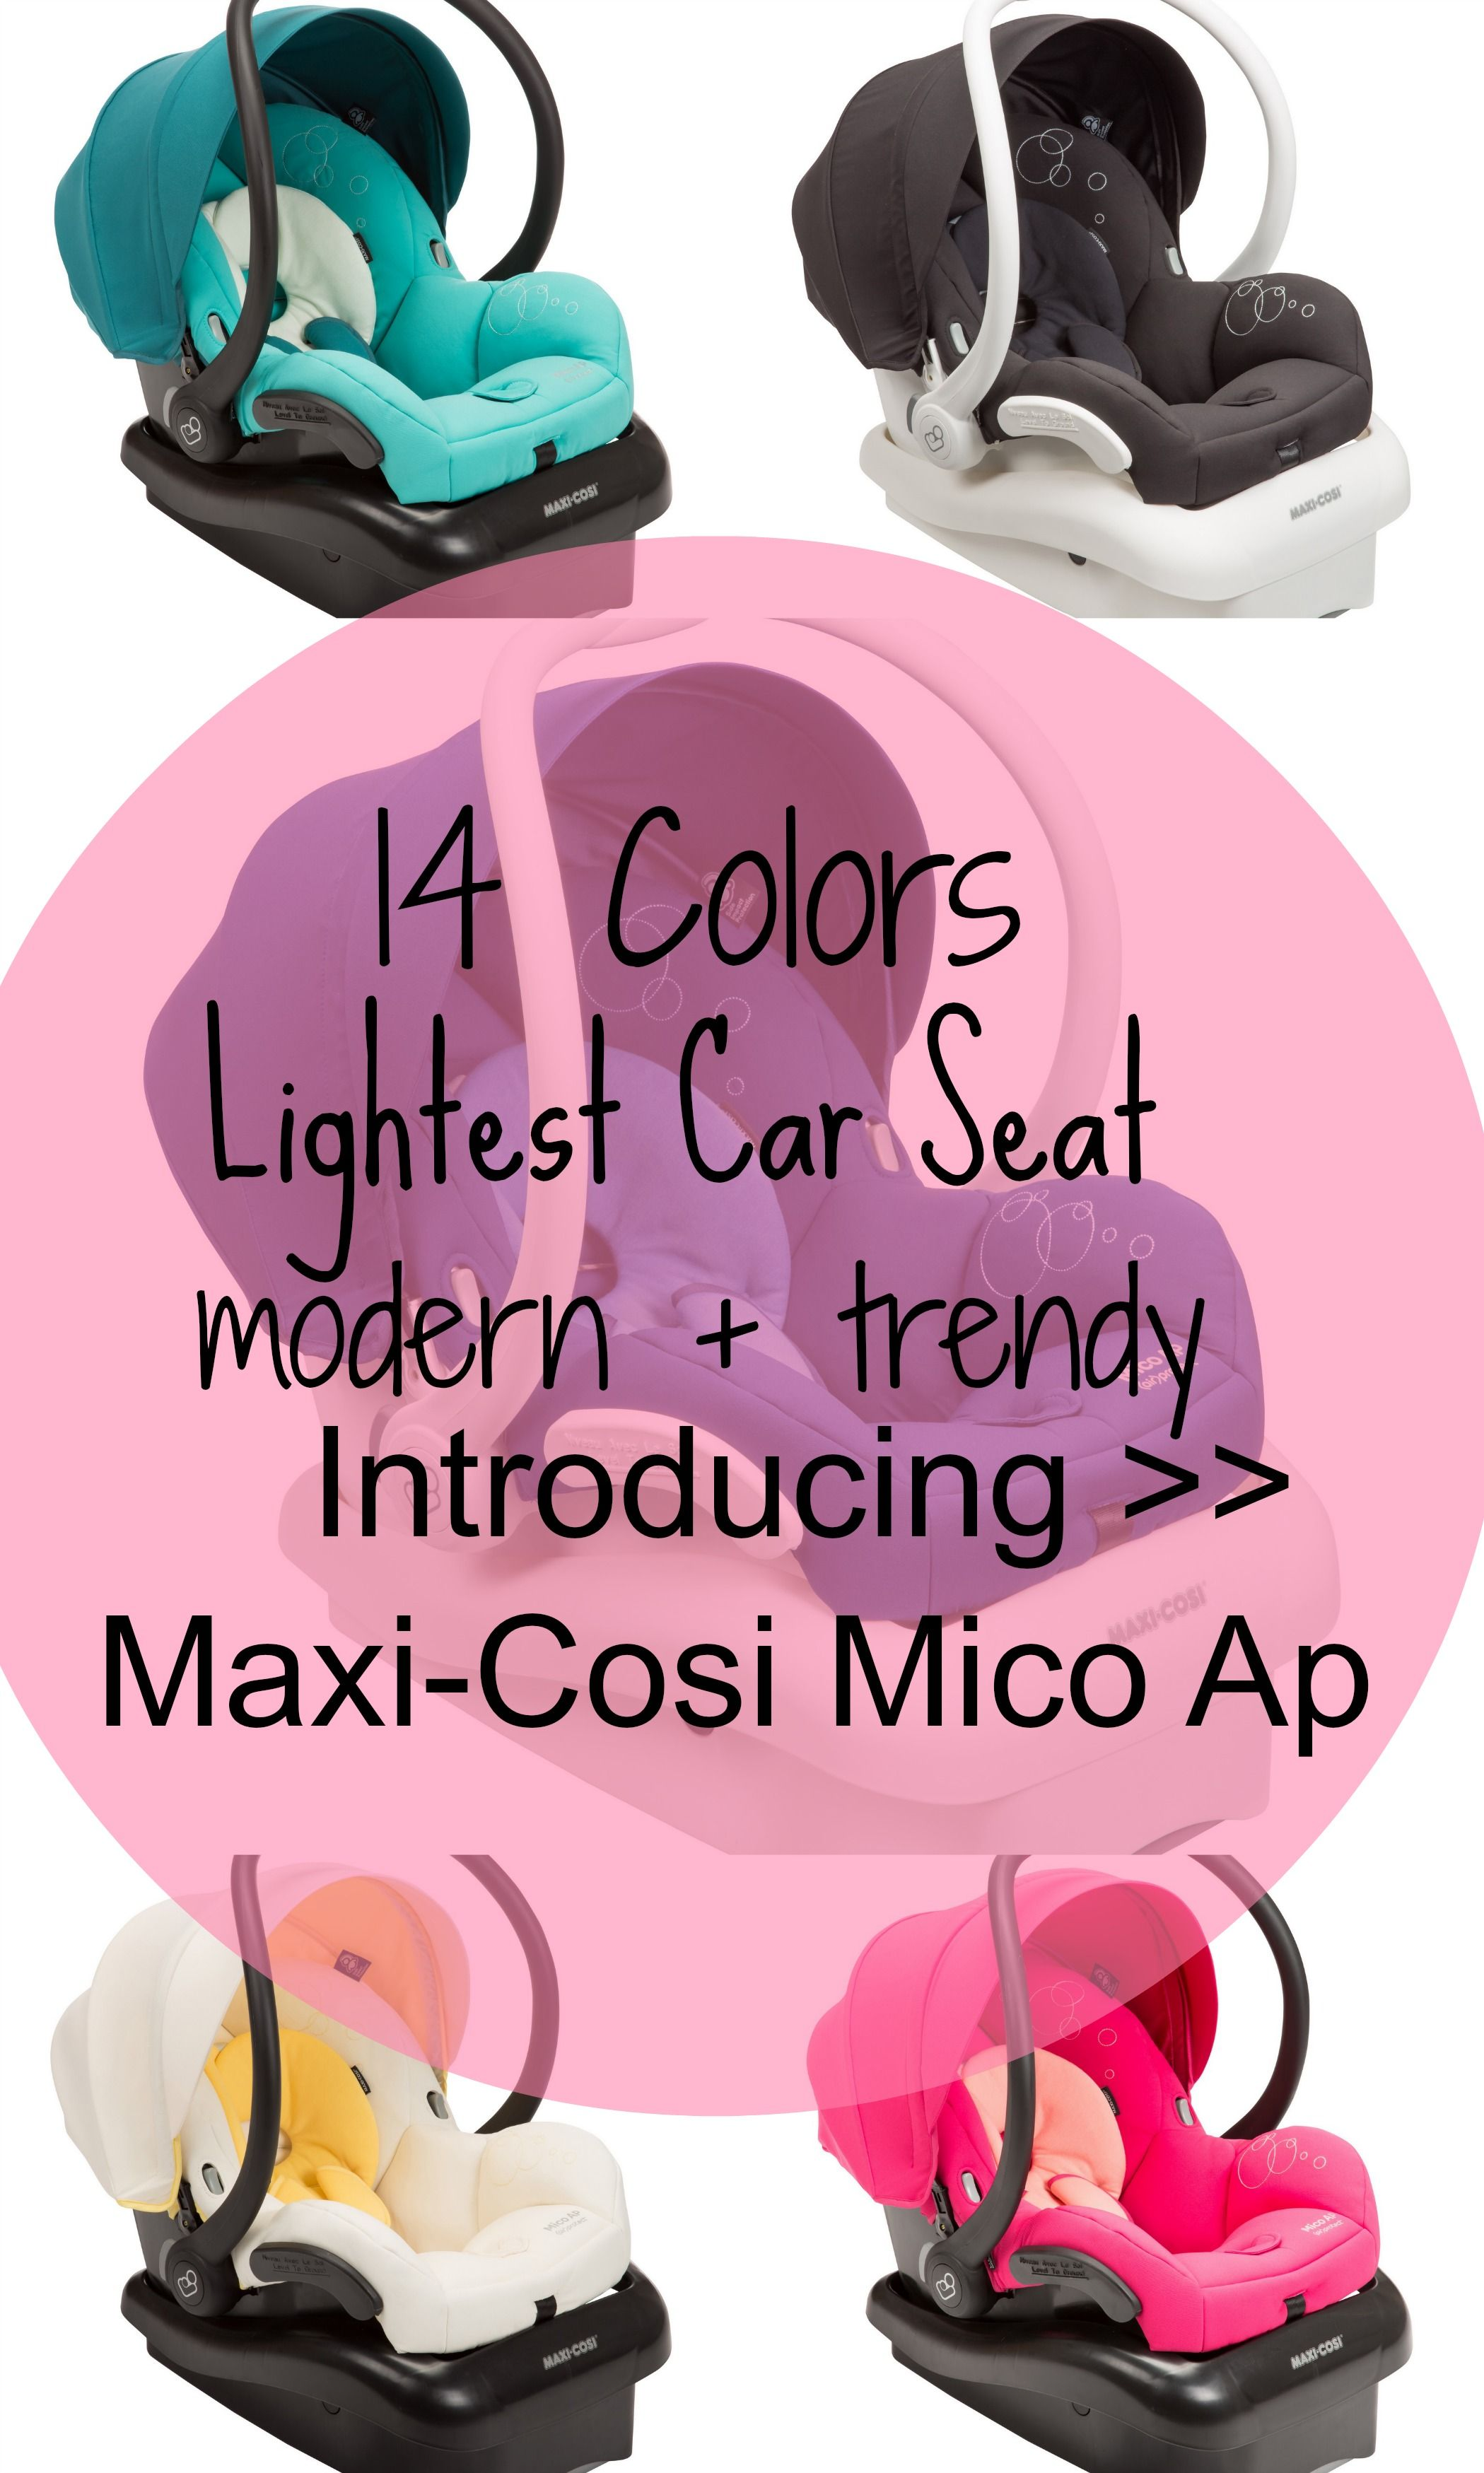 Maxi Cosi Launches Lightest Car Seat Introducing The Mico AP